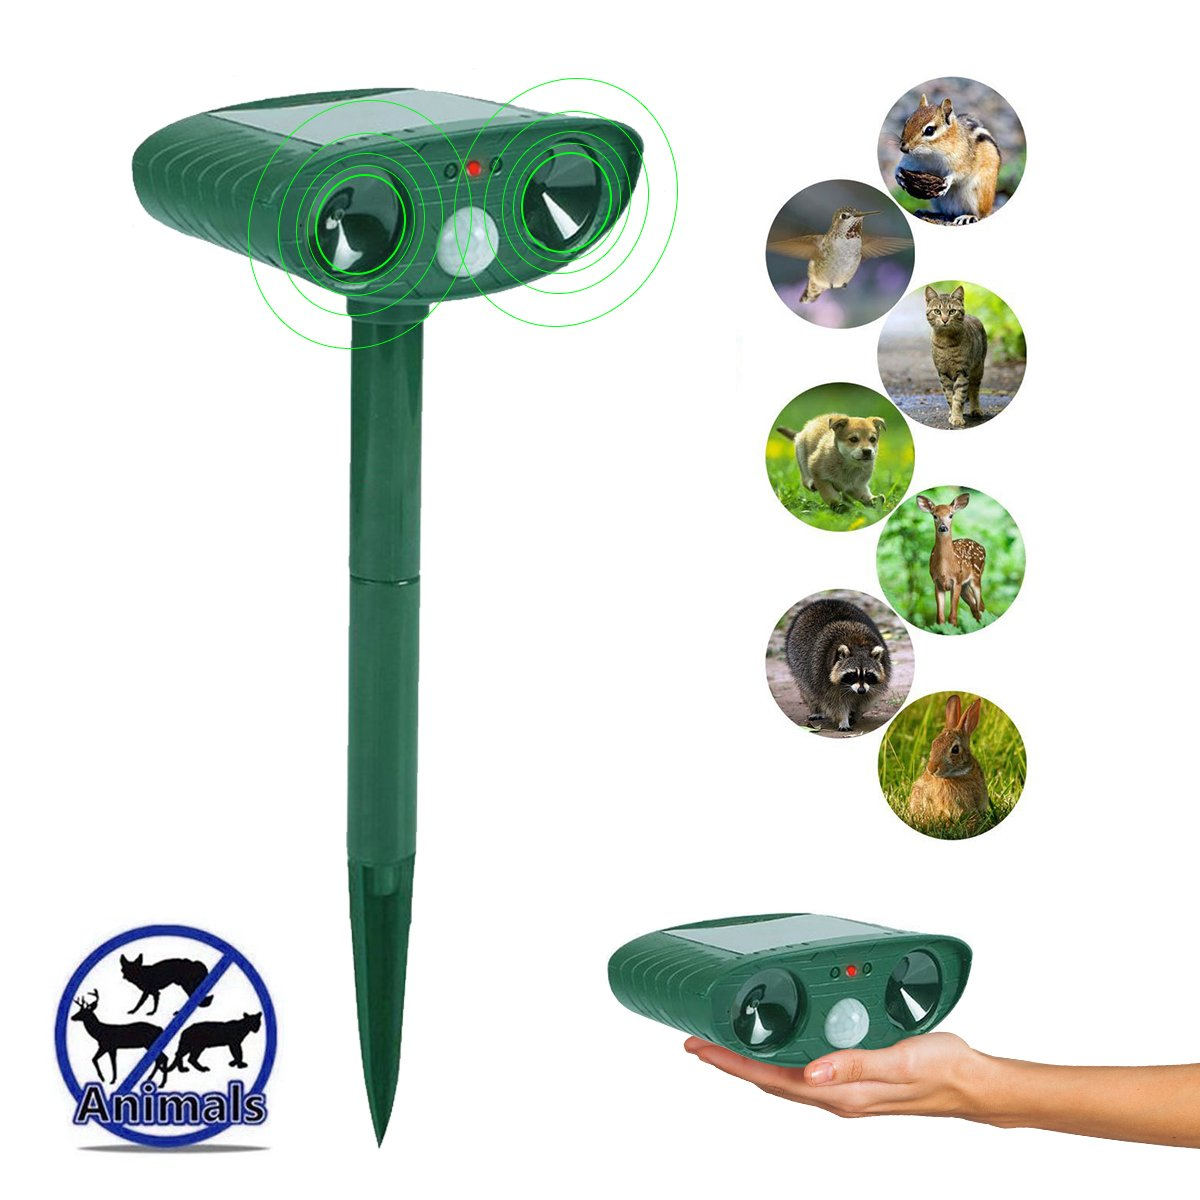 PLUSARGENT Ultrasonic Animal Repeller, Solar Powered Pest Repeller, Waterproof Outdoor Repellent with Motion Activated PIR Sensor, Repel Dogs, Cats, Squirrels, Foxes, Birds, Skunks, rod